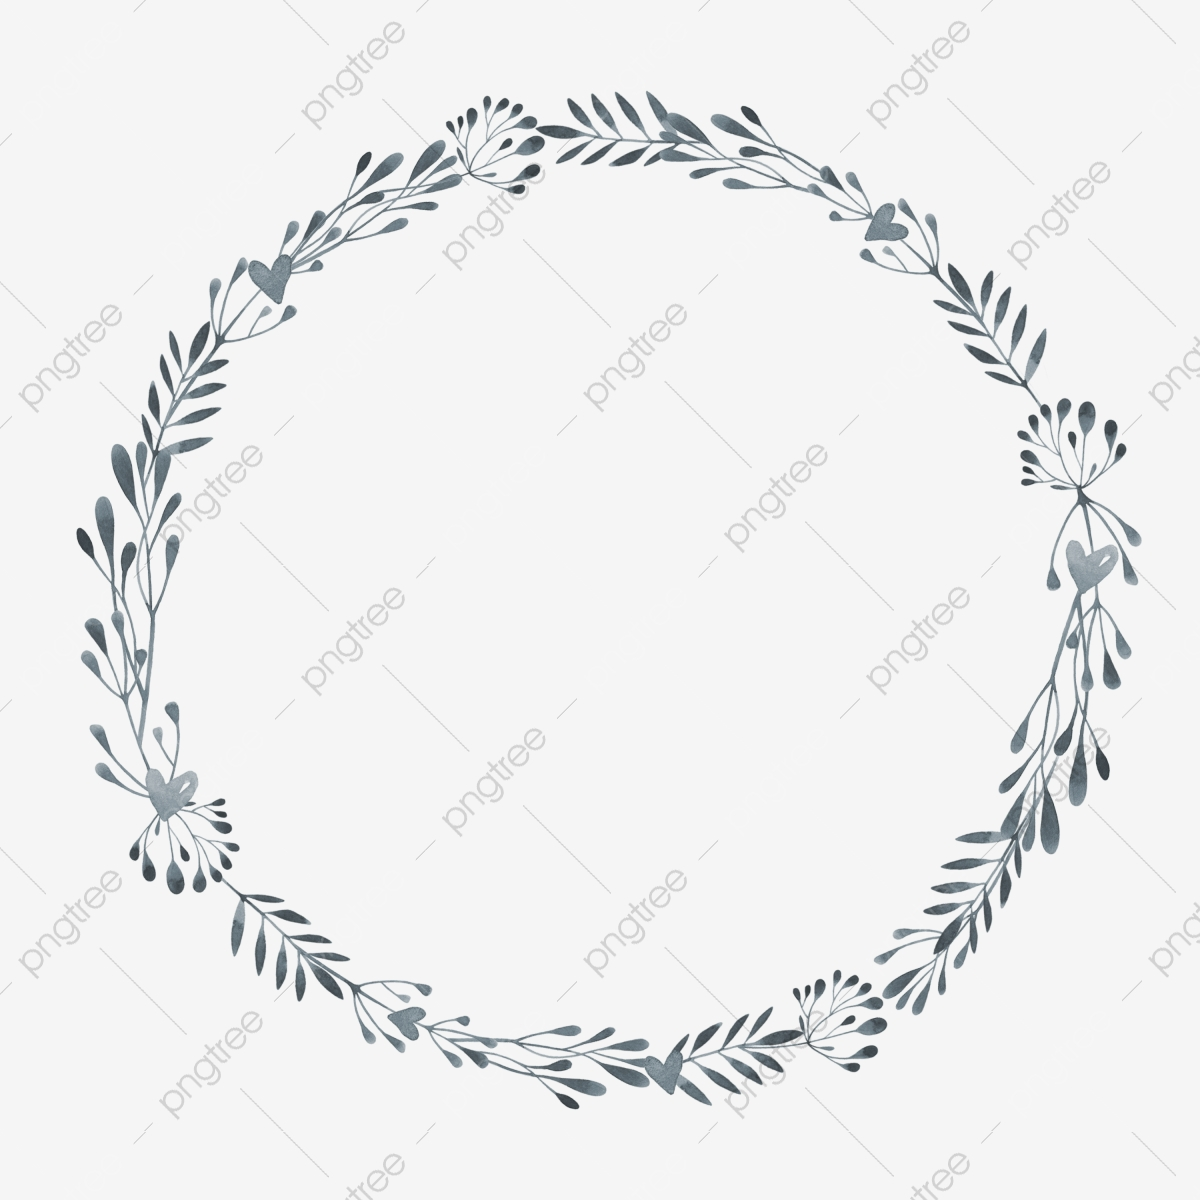 Leaf Wreath Decoration Illustration Wreath Of Leaves Green Garland Beautiful Garland Png Transparent Clipart Image And Psd File For Free Download